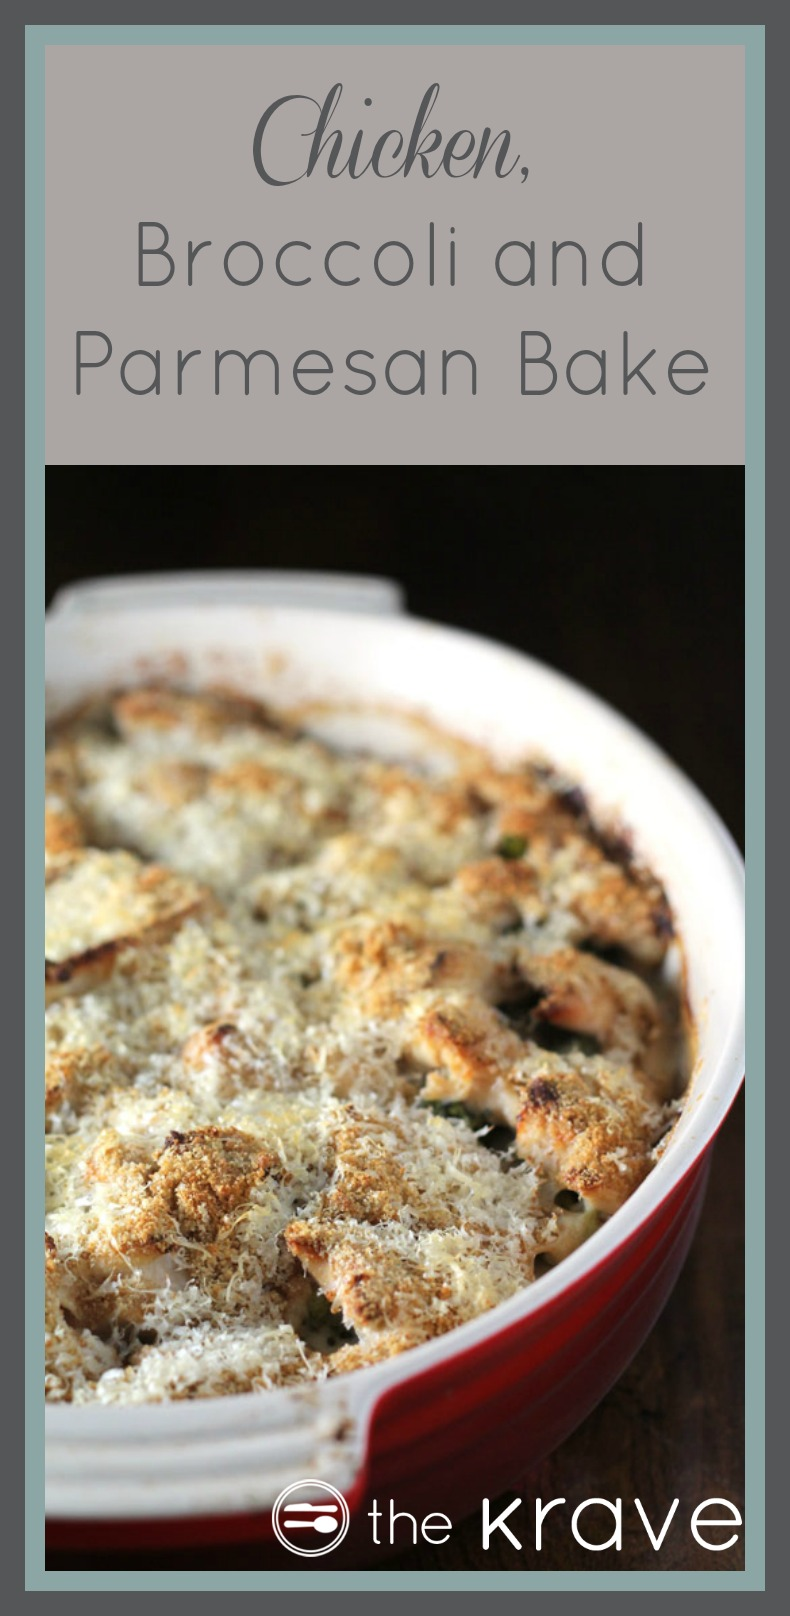 Chicken, Broccoli and Parmesan Bake